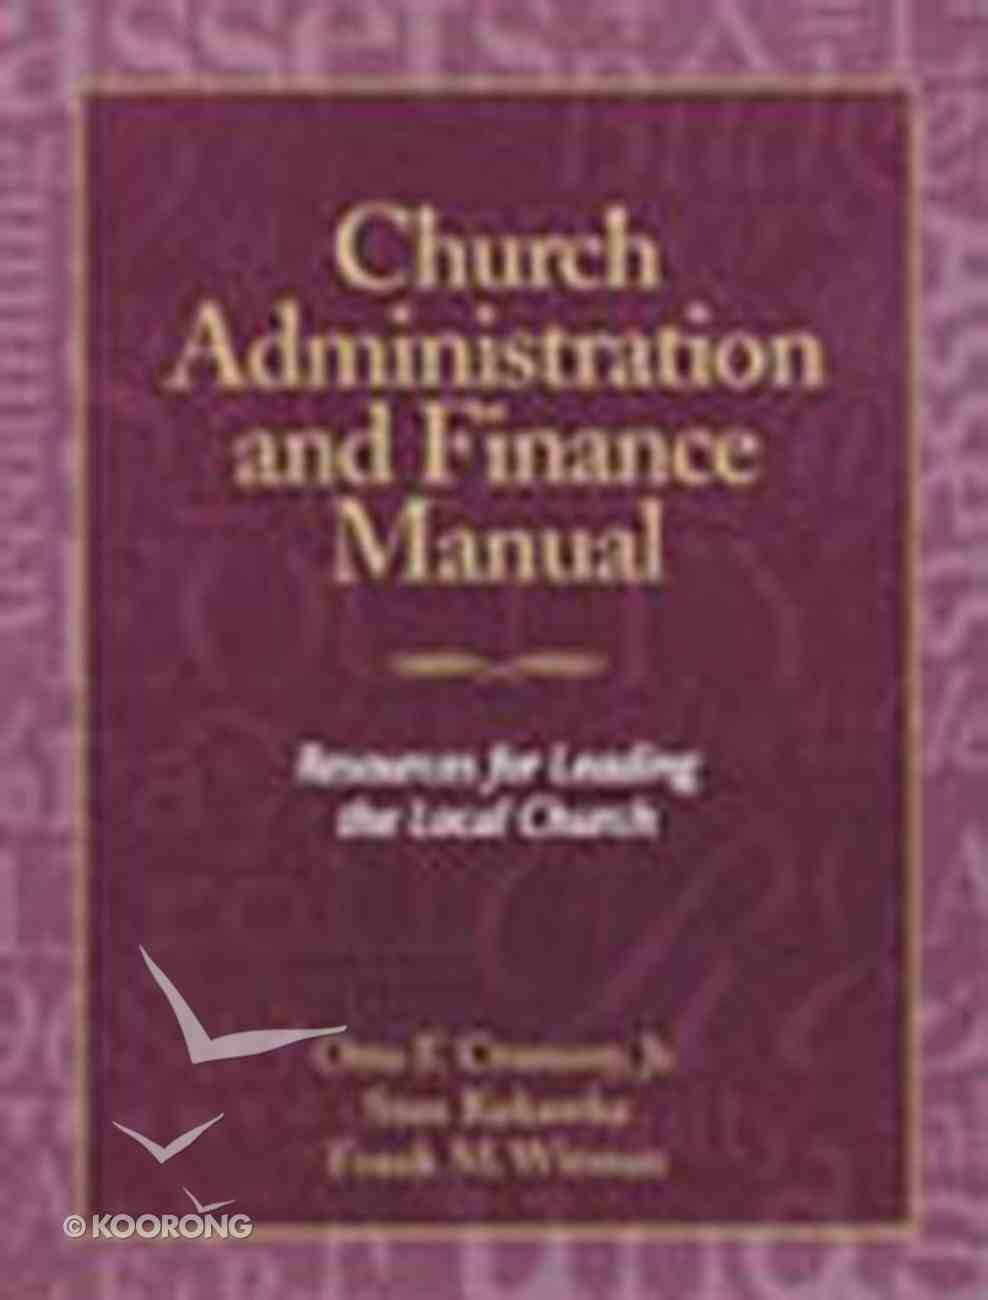 Church Administration and Finance Manual Paperback